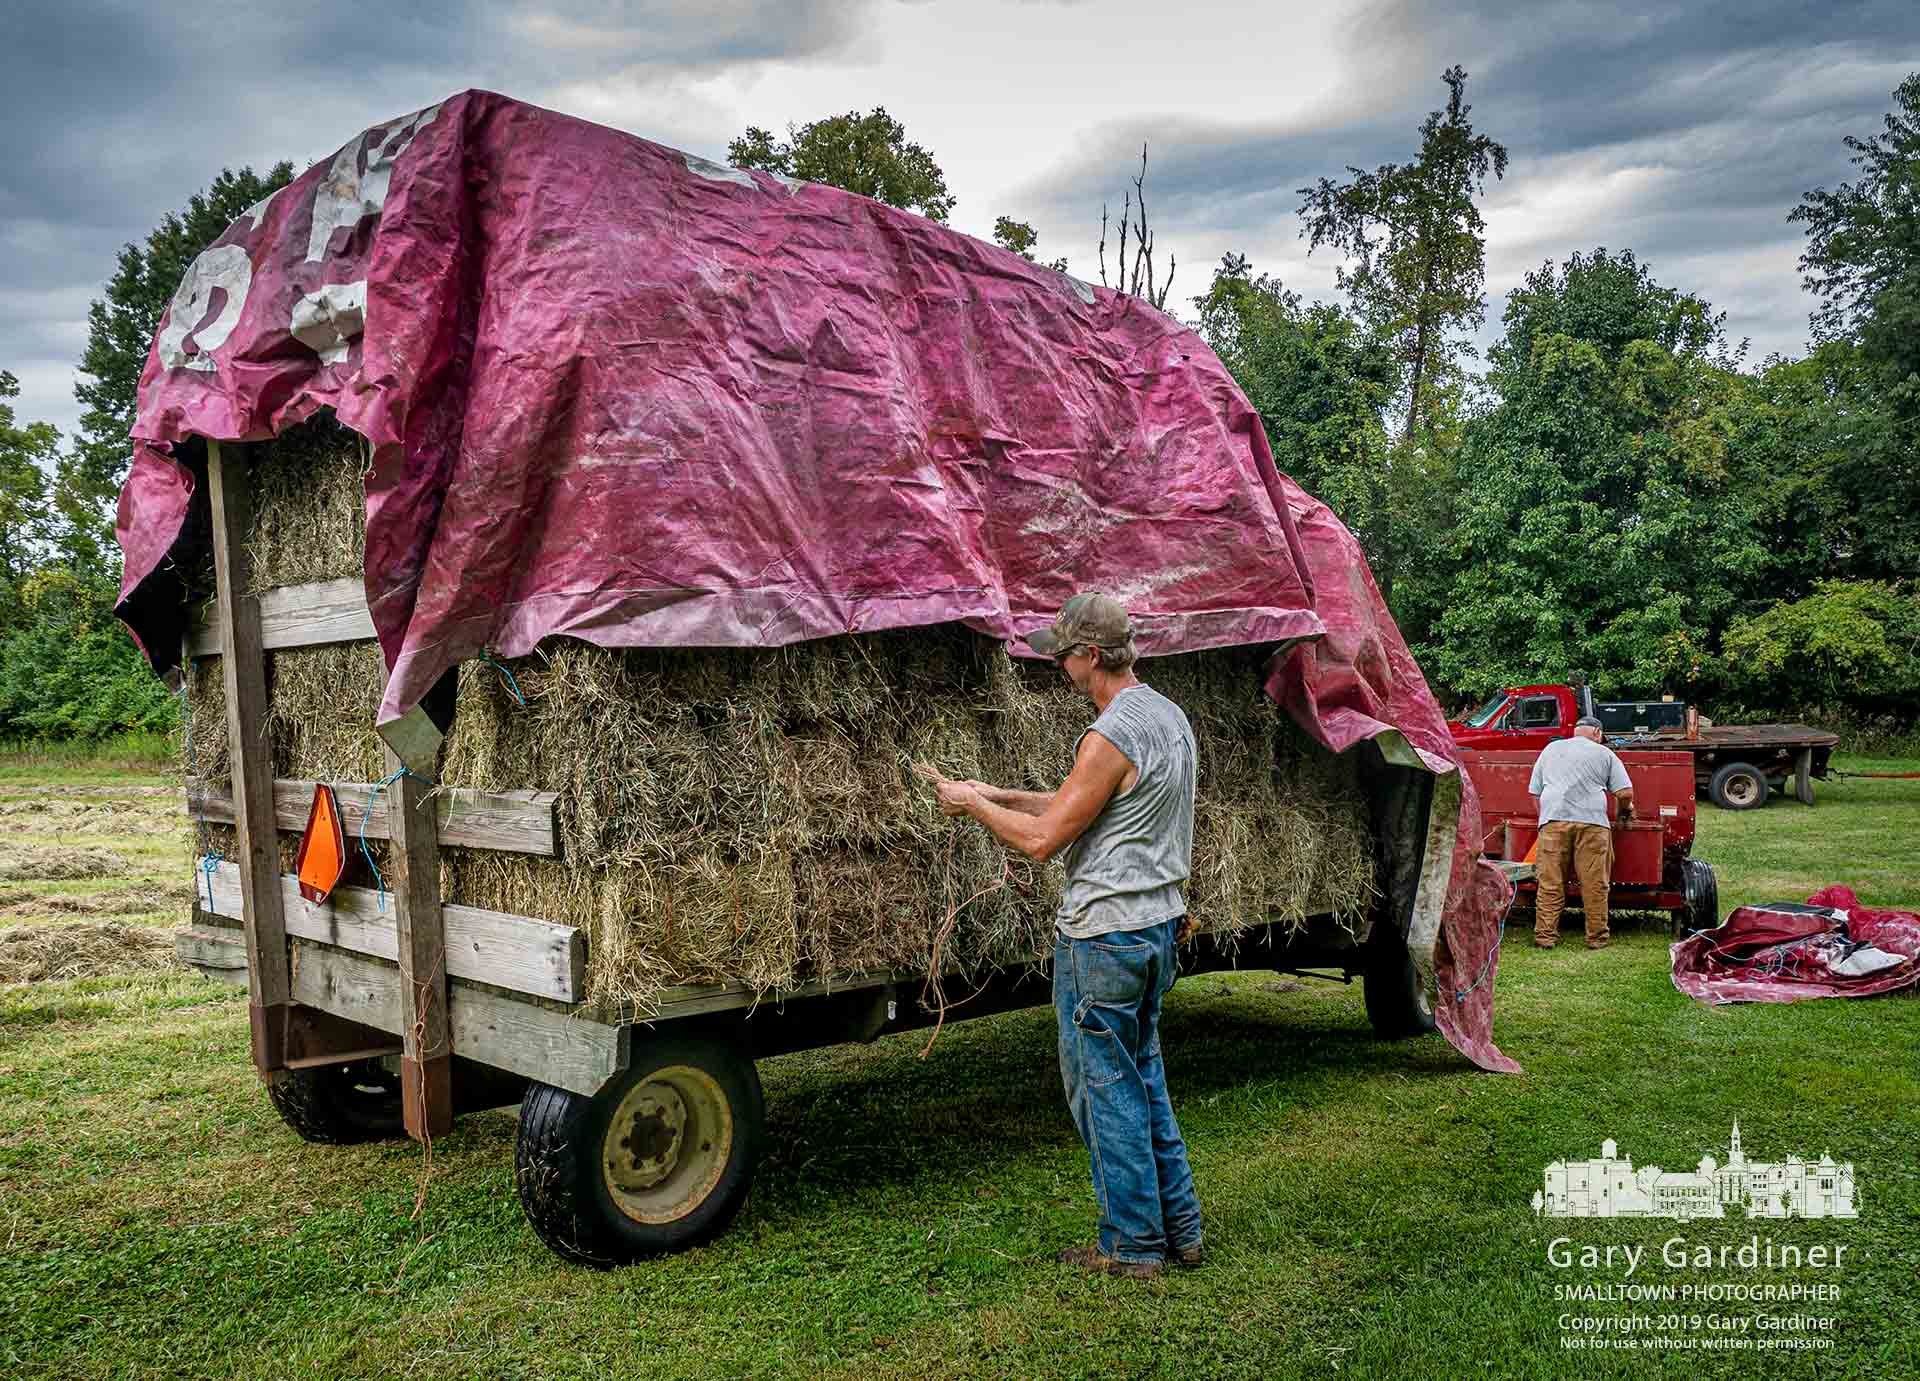 Rodney Parker attaches a tarpaulin to a partial load of hay after an unexpected rain cloud stopped the harvest at a field on North West Street. My Final Photo for Sept. 6, 2019.